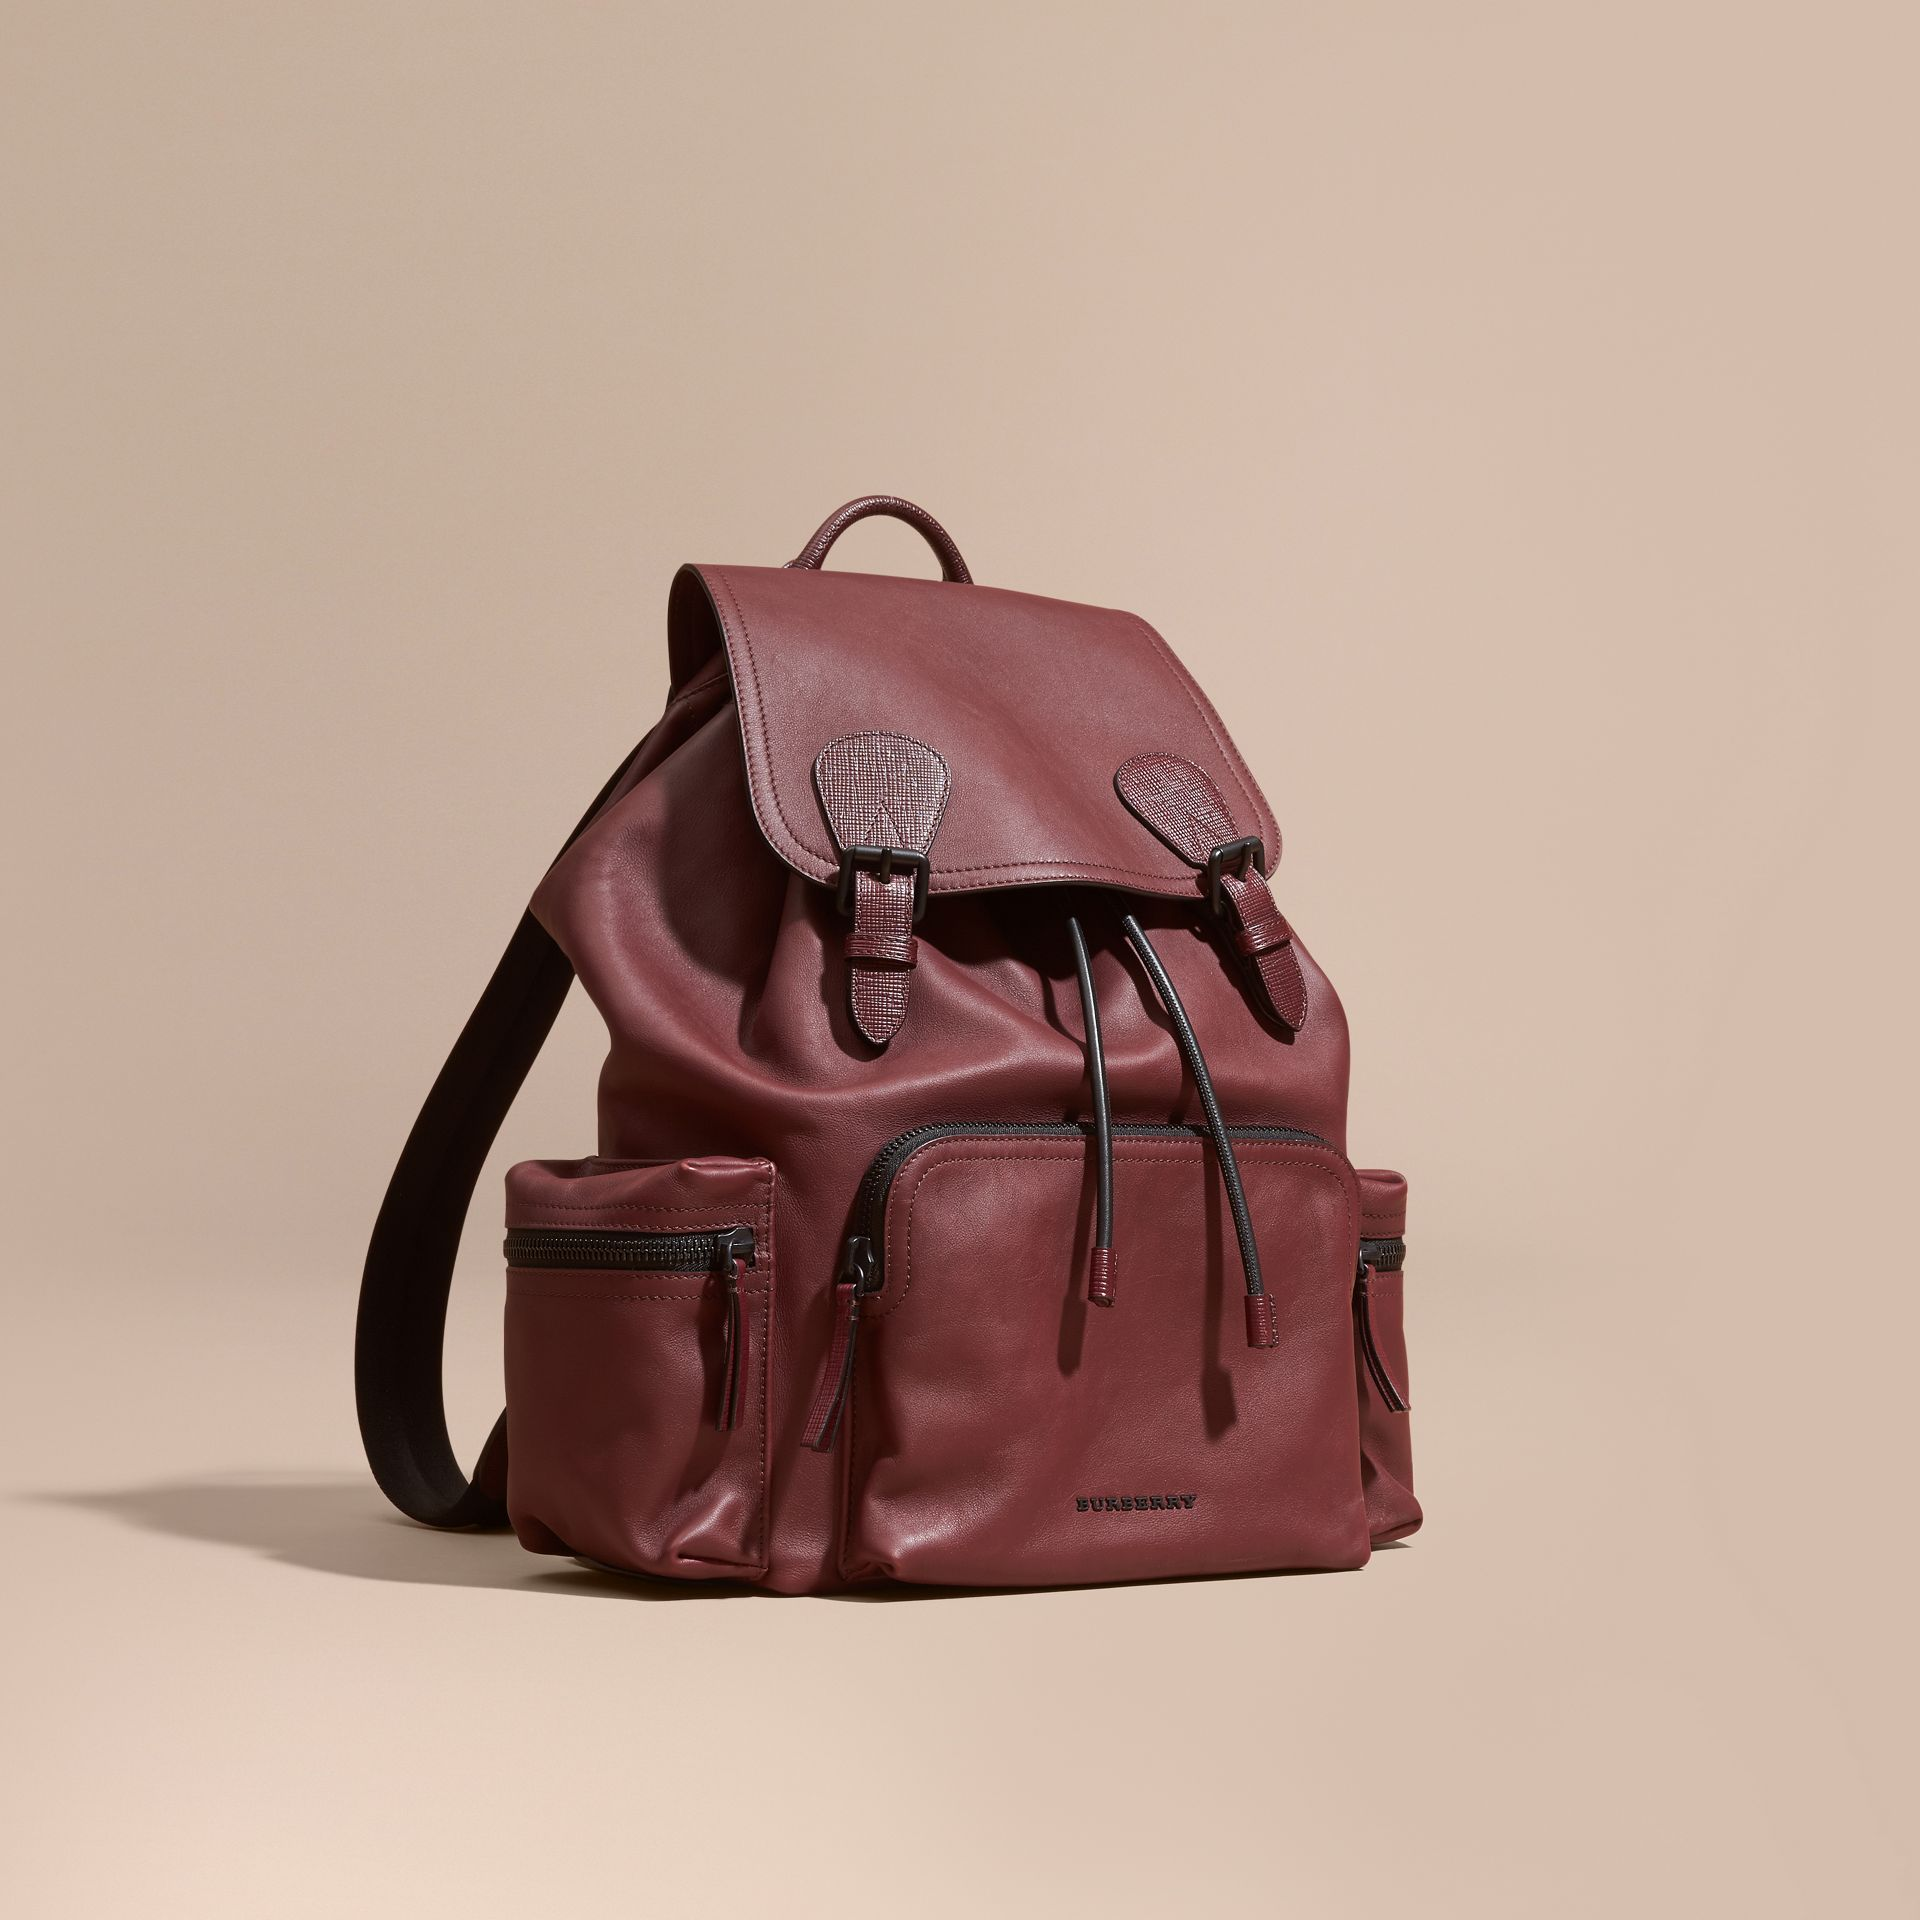 Burgundy red The Large Rucksack in Water-repellent Leather Burgundy Red - gallery image 1